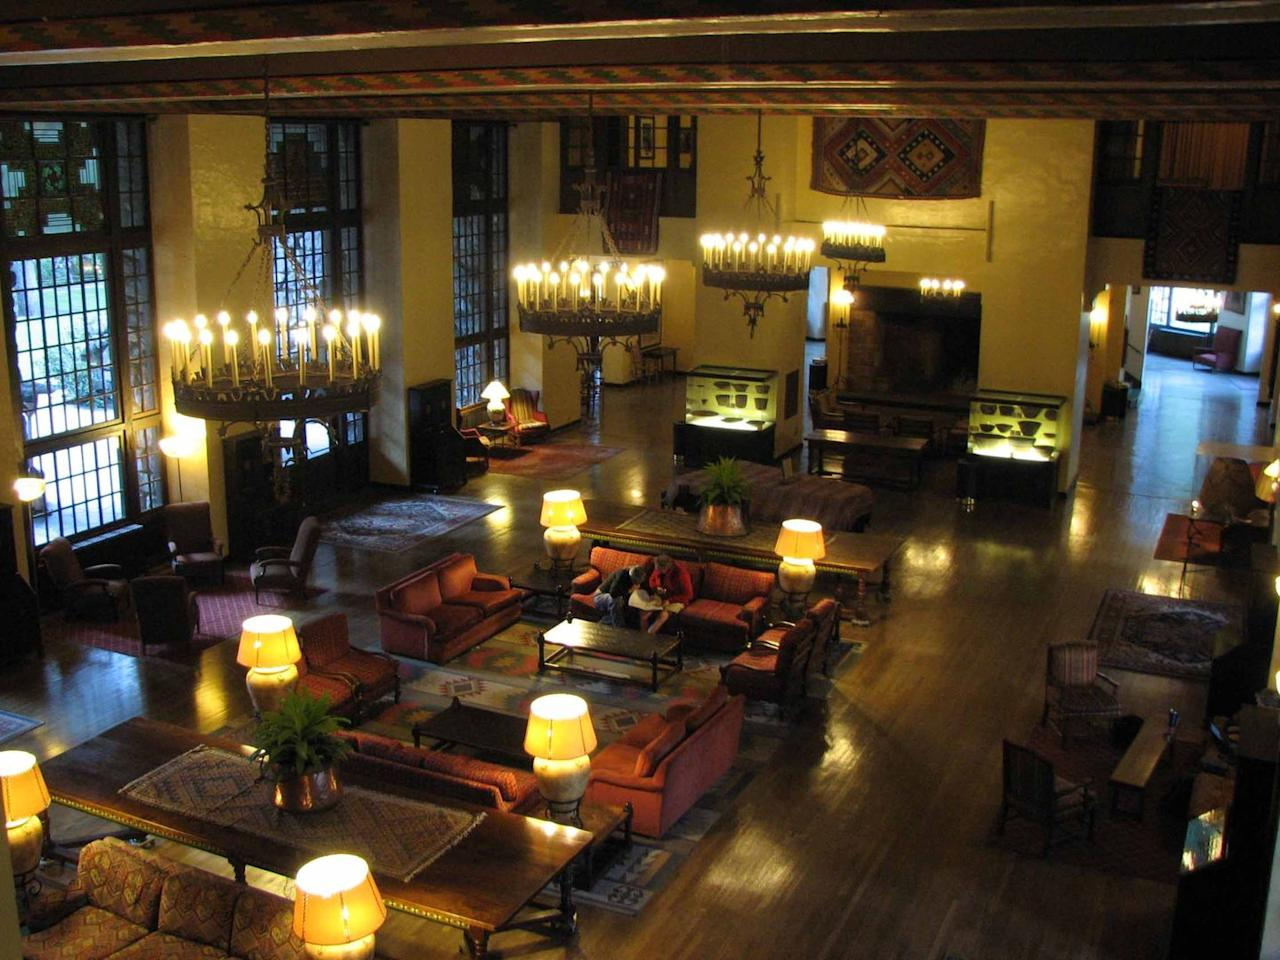 """<p>Visiting <a href=""""https://www.nationalparkreservations.com/lodge/yosemite-ahwahnee-hotel/?gclid=EAIaIQobChMI_9LA--Sy6wIVEW-GCh3iGwqGEAAYASAAEgJNp_D_BwE#property-header-menu"""" target=""""_blank"""">the Ahwahnee</a>, formerly known as the Majestic Yosemite Hotel, is like stepping back in time. Built in 1927 at the base of Yosemite's iconic Half Dome, the hotel's signature design elements—lighting, stenciled beams, stained glass, and rich tapestries that reflect an amalgamation of influences from Art Deco and Native American to Middle Eastern and the Arts and Crafts movement—can still be seen today. The lodge's top-tier rooms feature balconies with stunning views.</p>"""